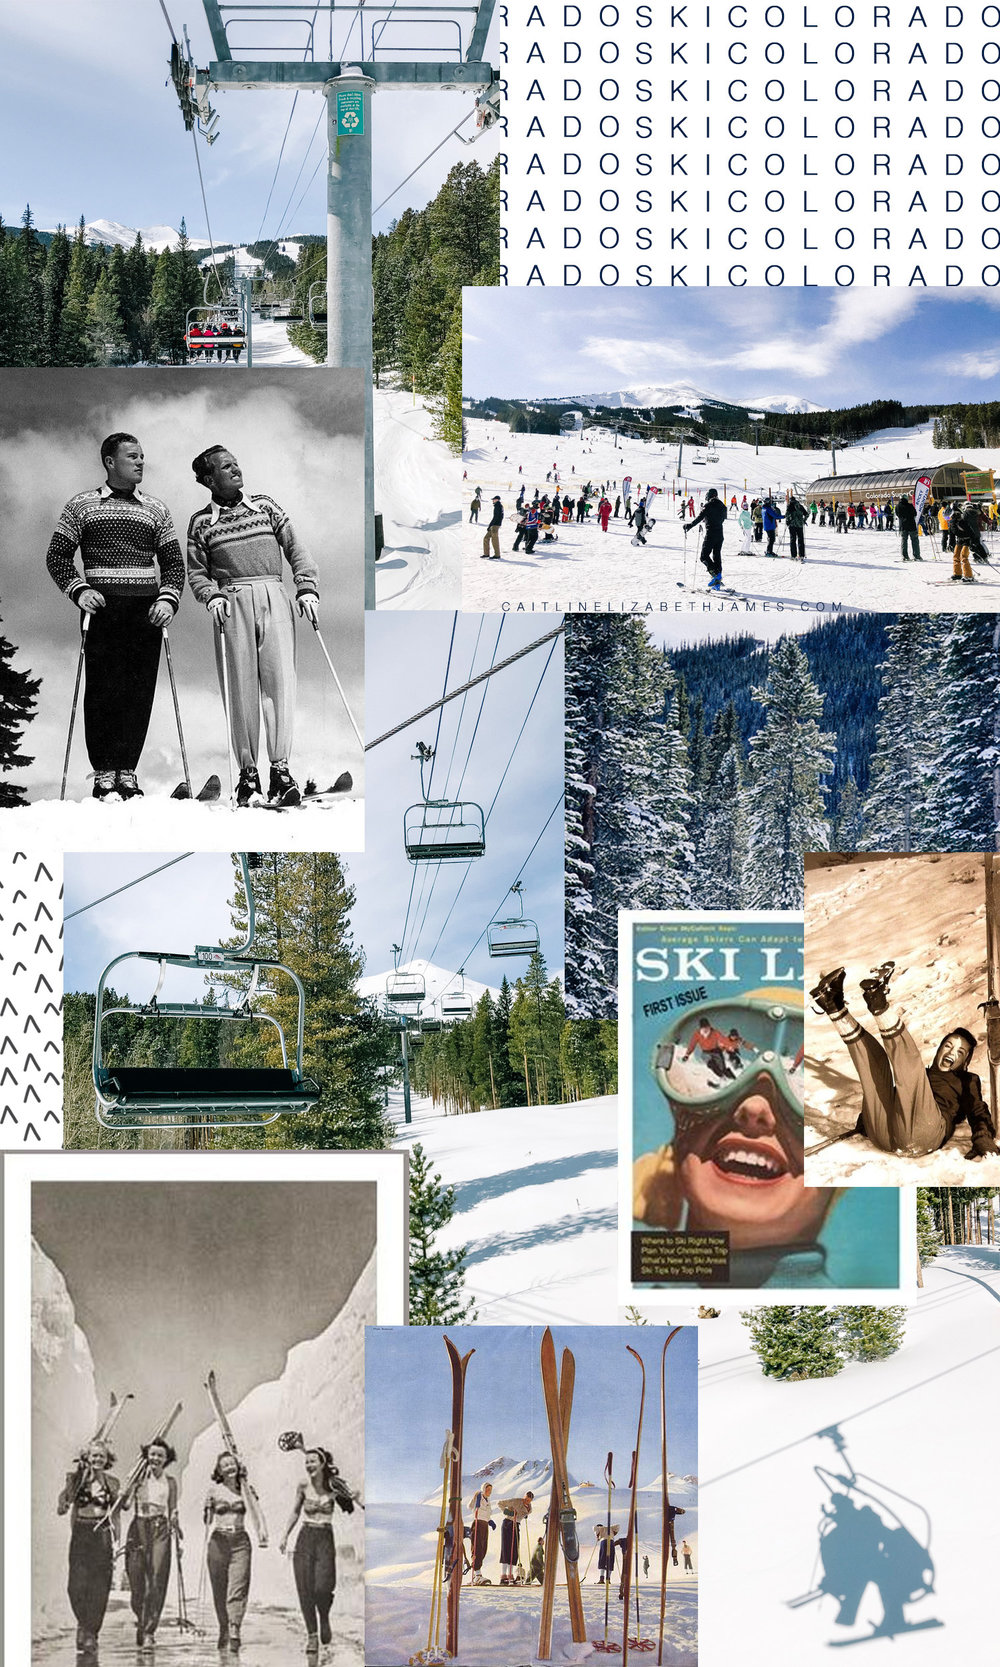 colorado-caitlin-elizabeth-james-collage-inspiration